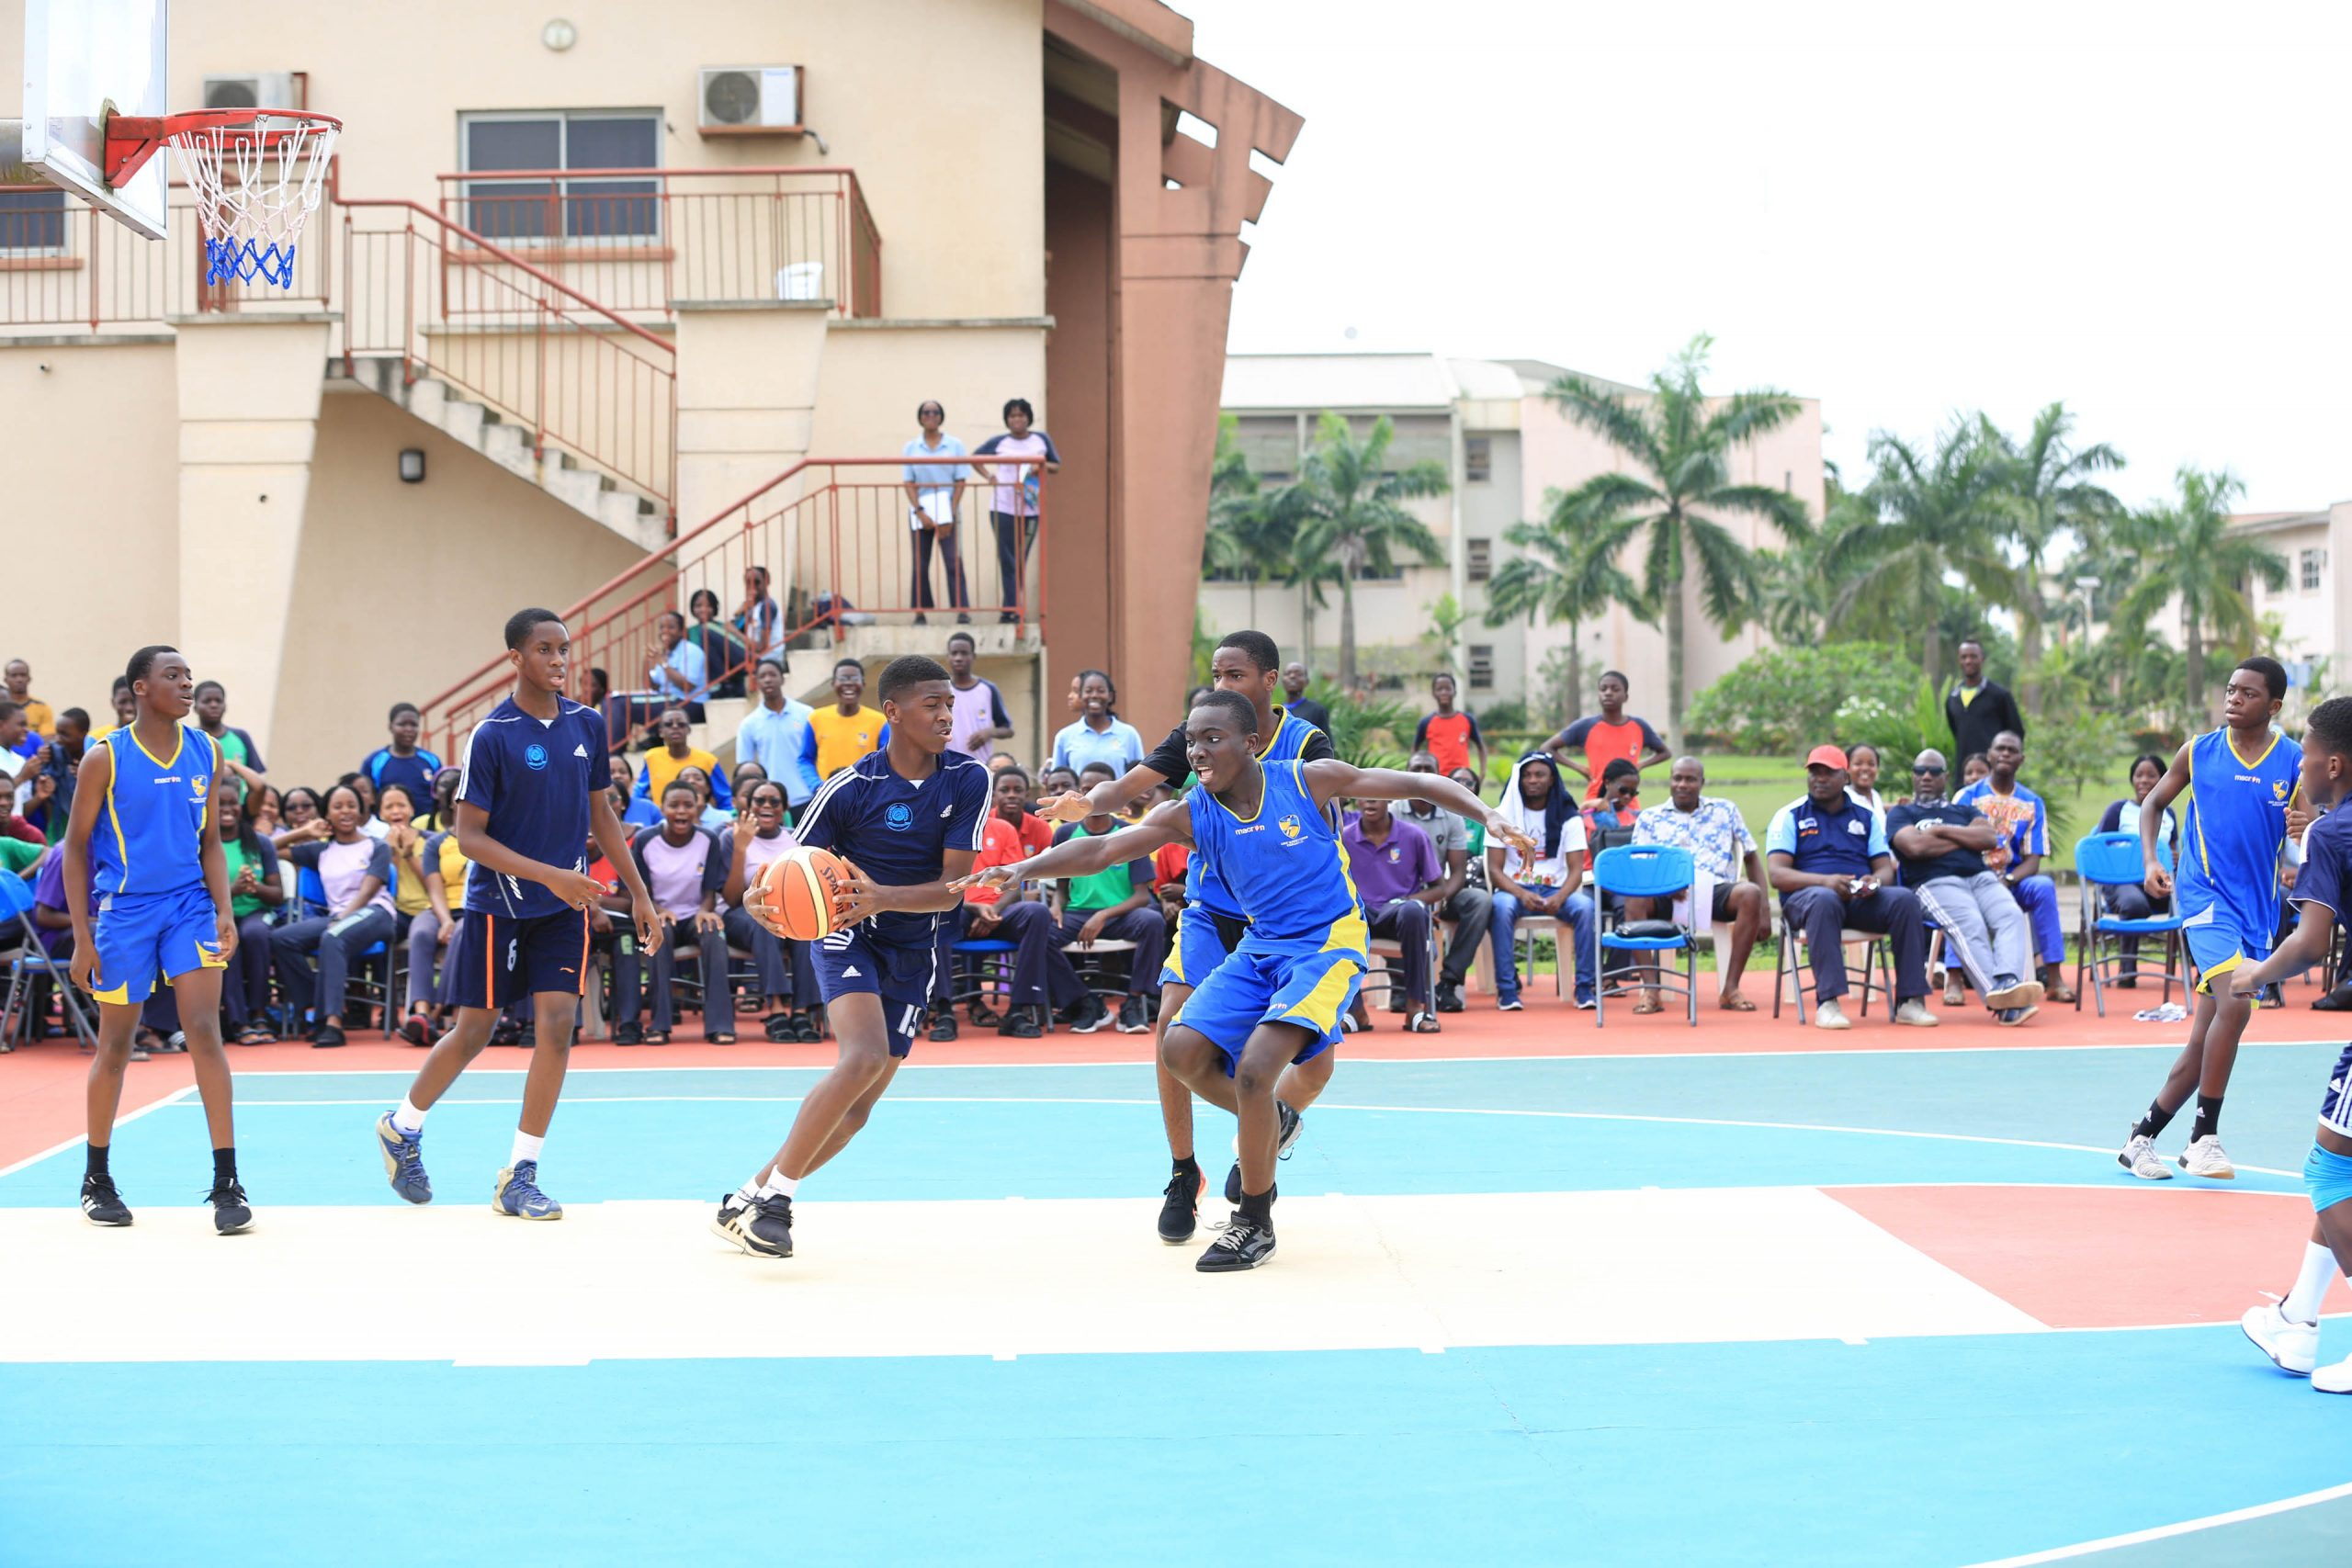 Sport and Physical Recreation